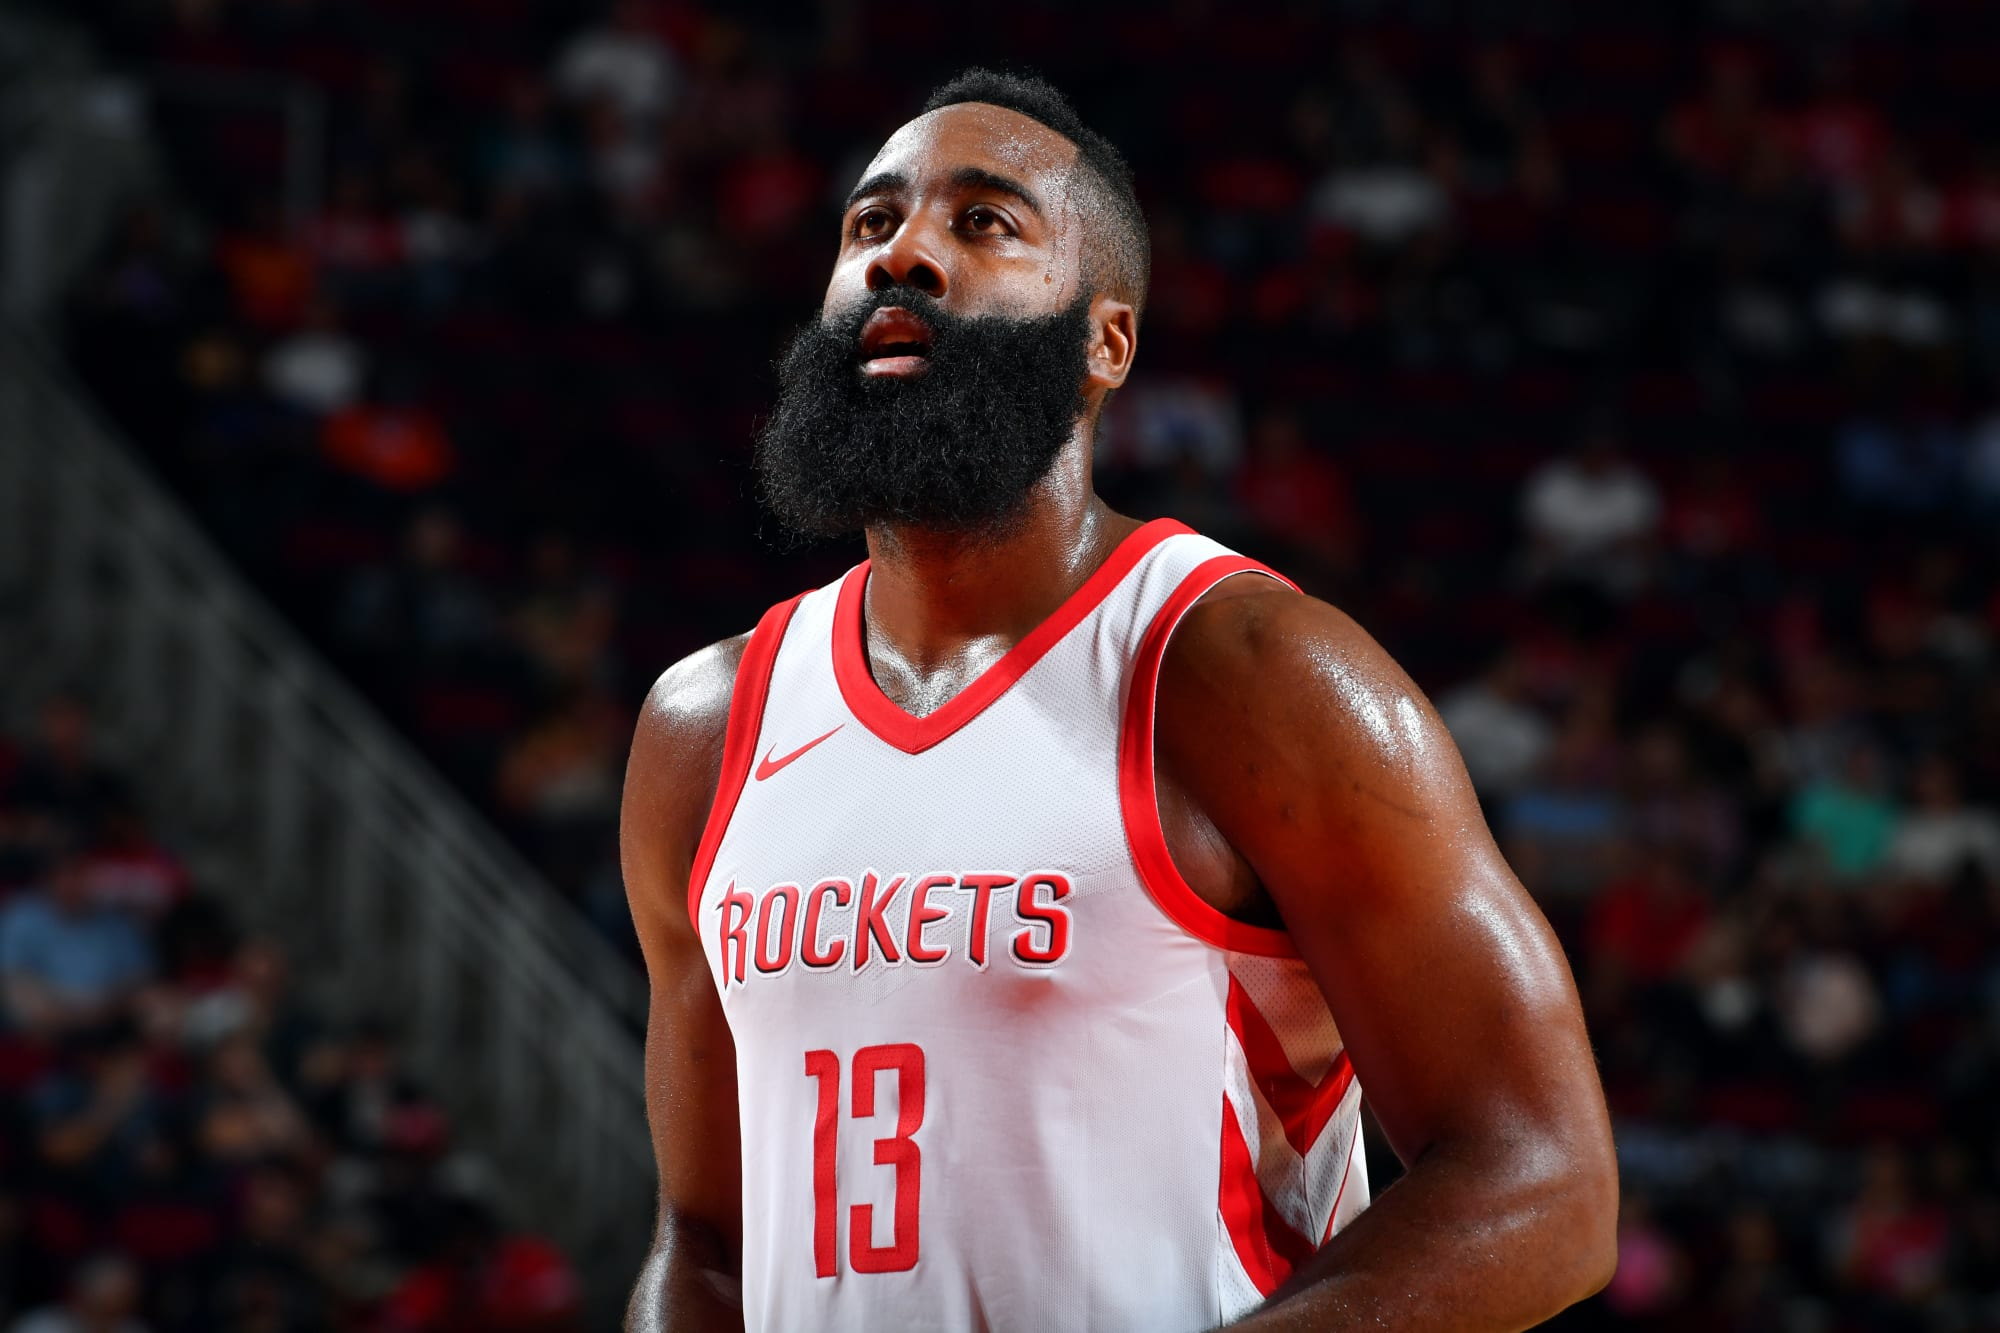 Houston Rockets: What to watch for against the Spurs on Feb. 1